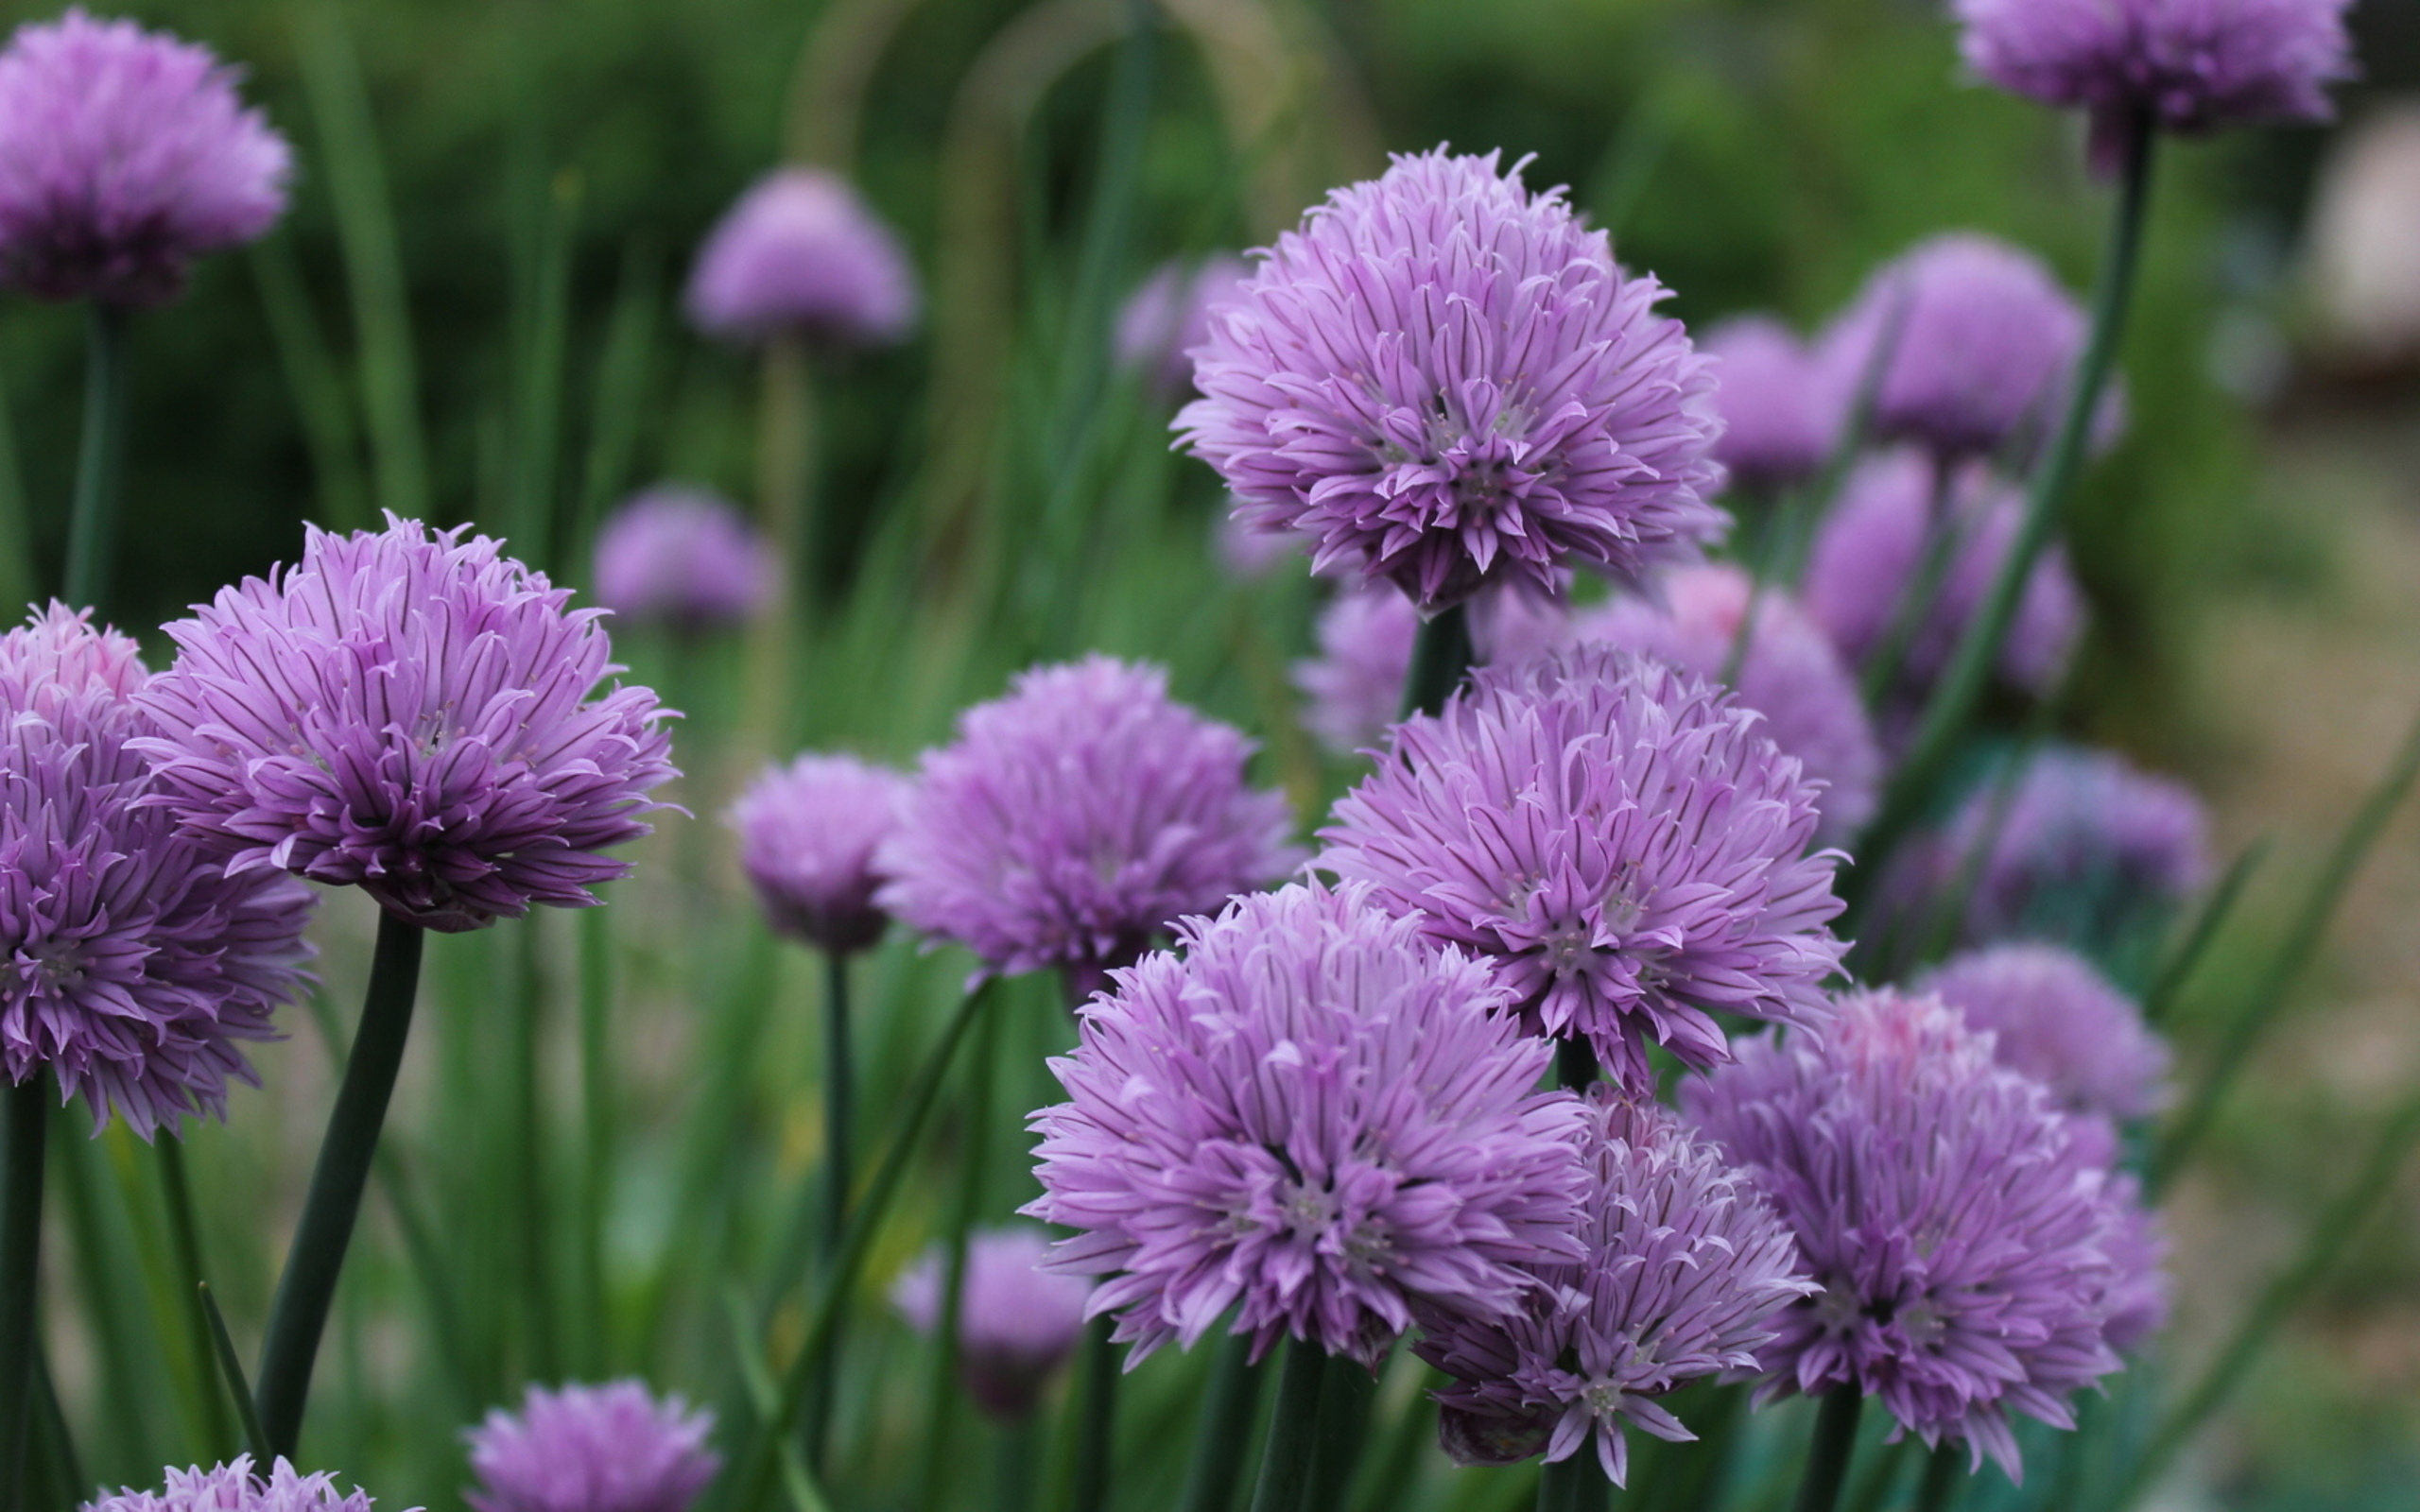 Chive Flowers Hd Wallpaper Background Image 2560x1600 Id